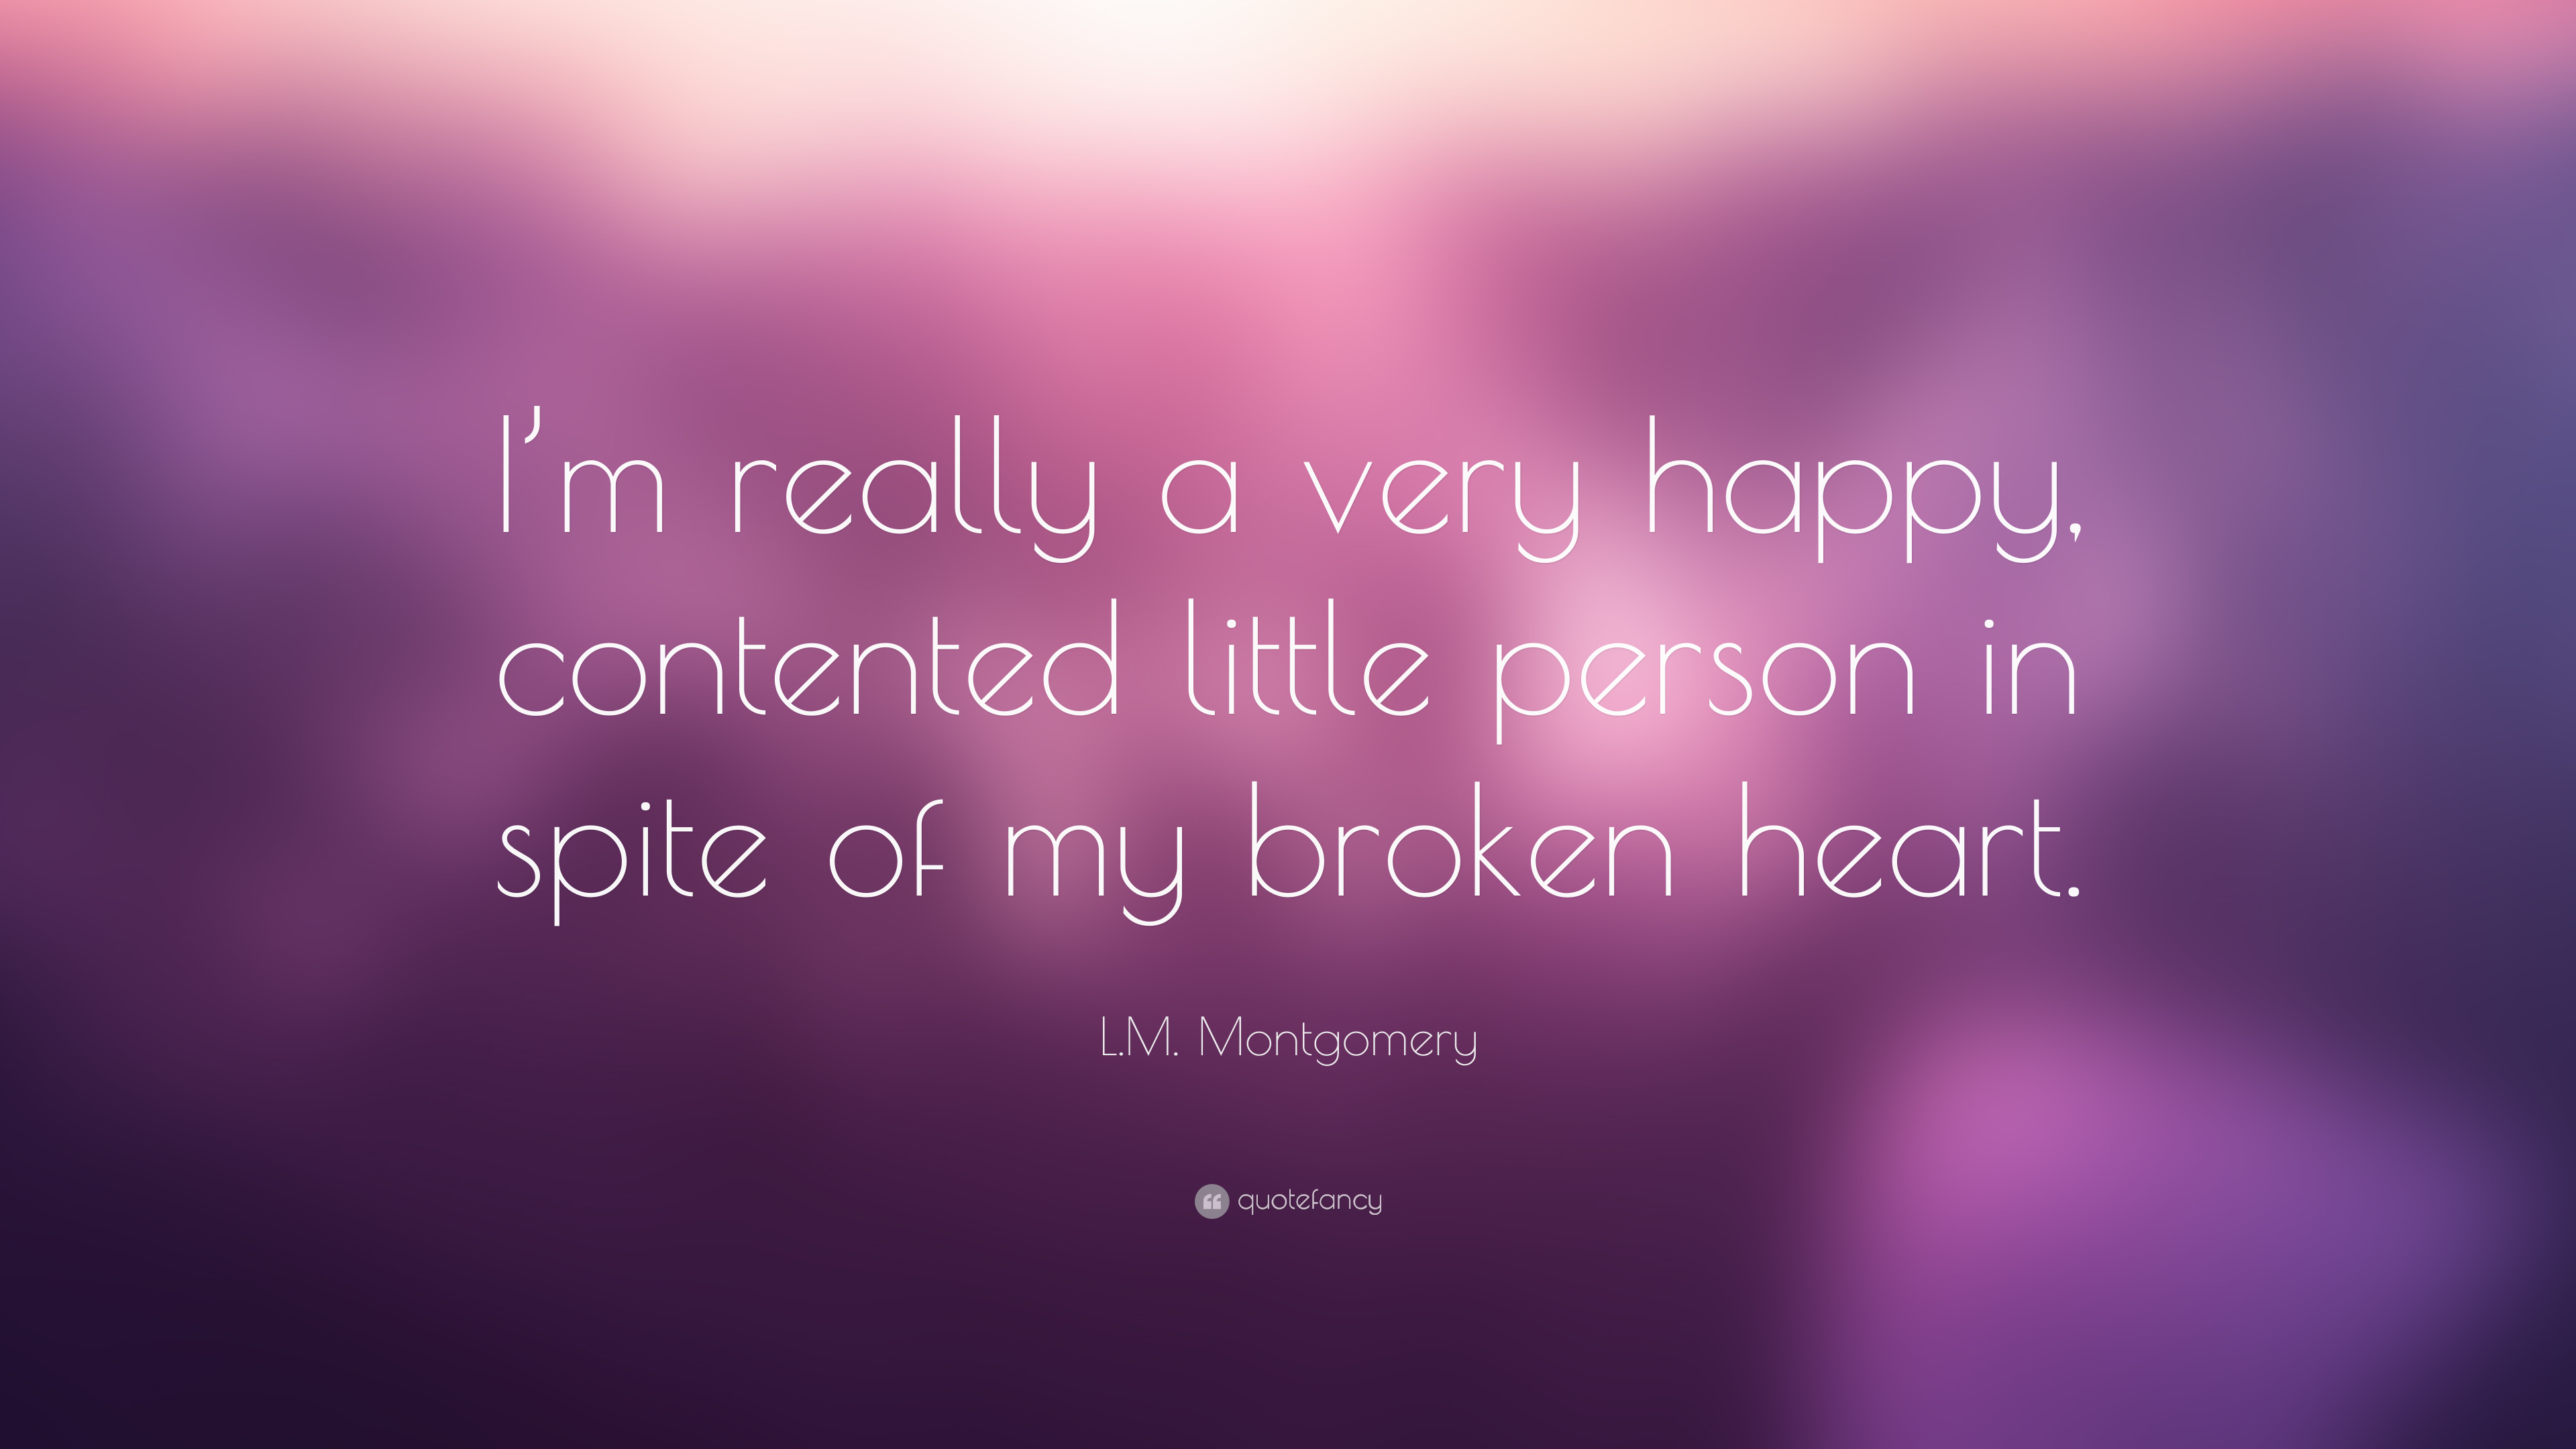 L M Montgomery Quote I M Really A Very Happy Contented Little